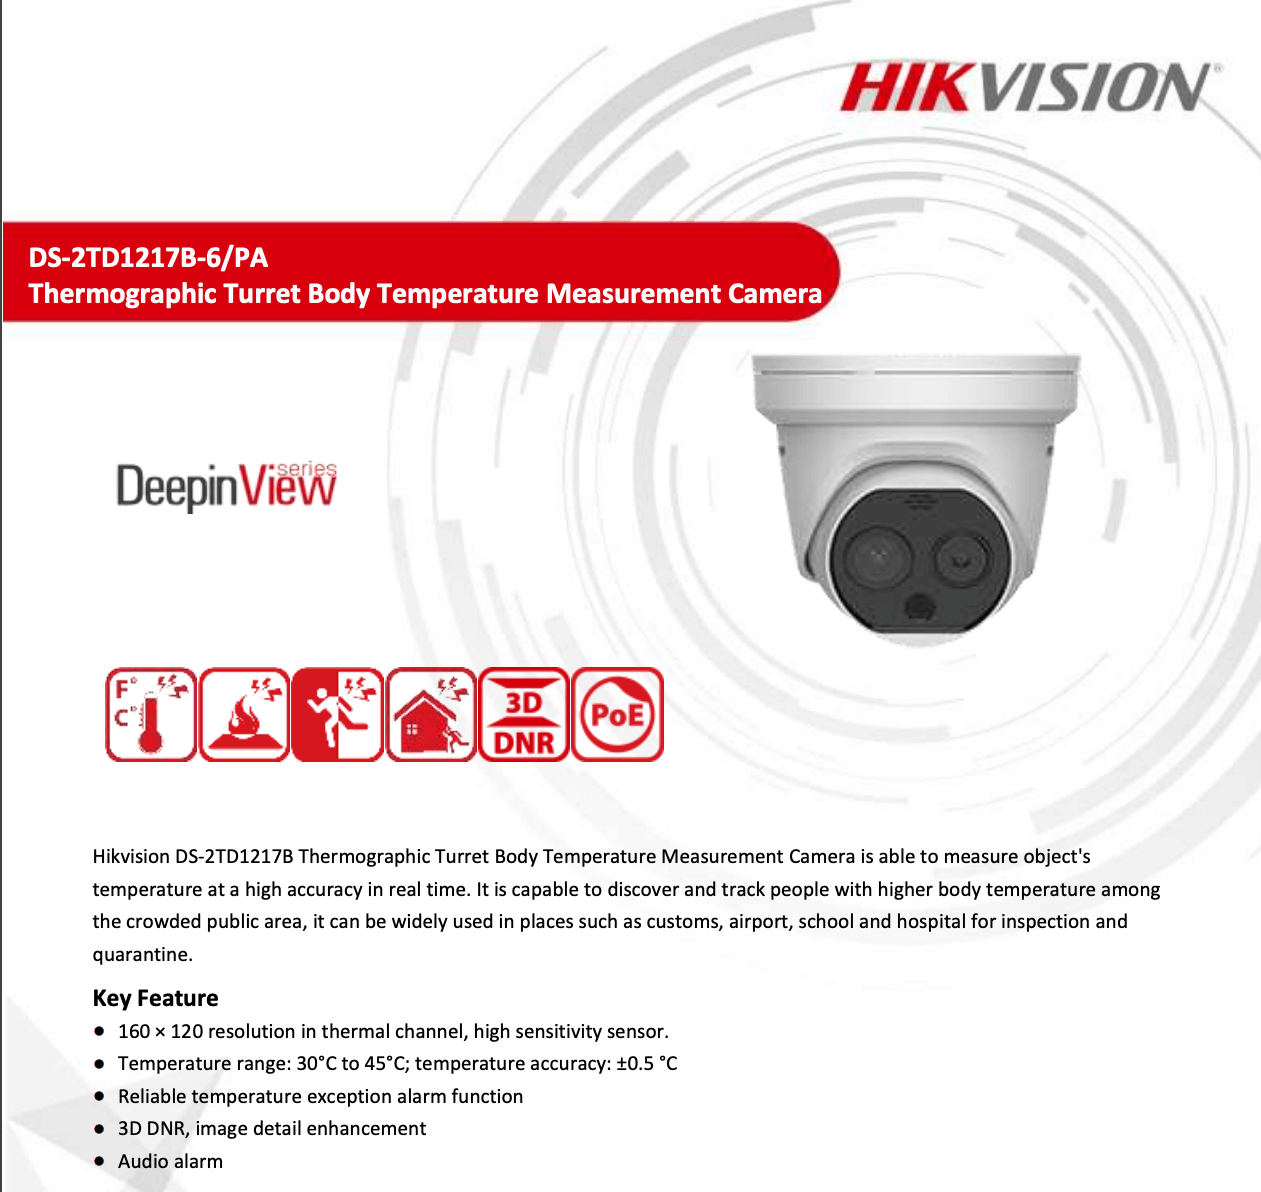 Hikvision Thermographic Body Temperature Measurement IP Camera DS-2TD2617B-6/PA